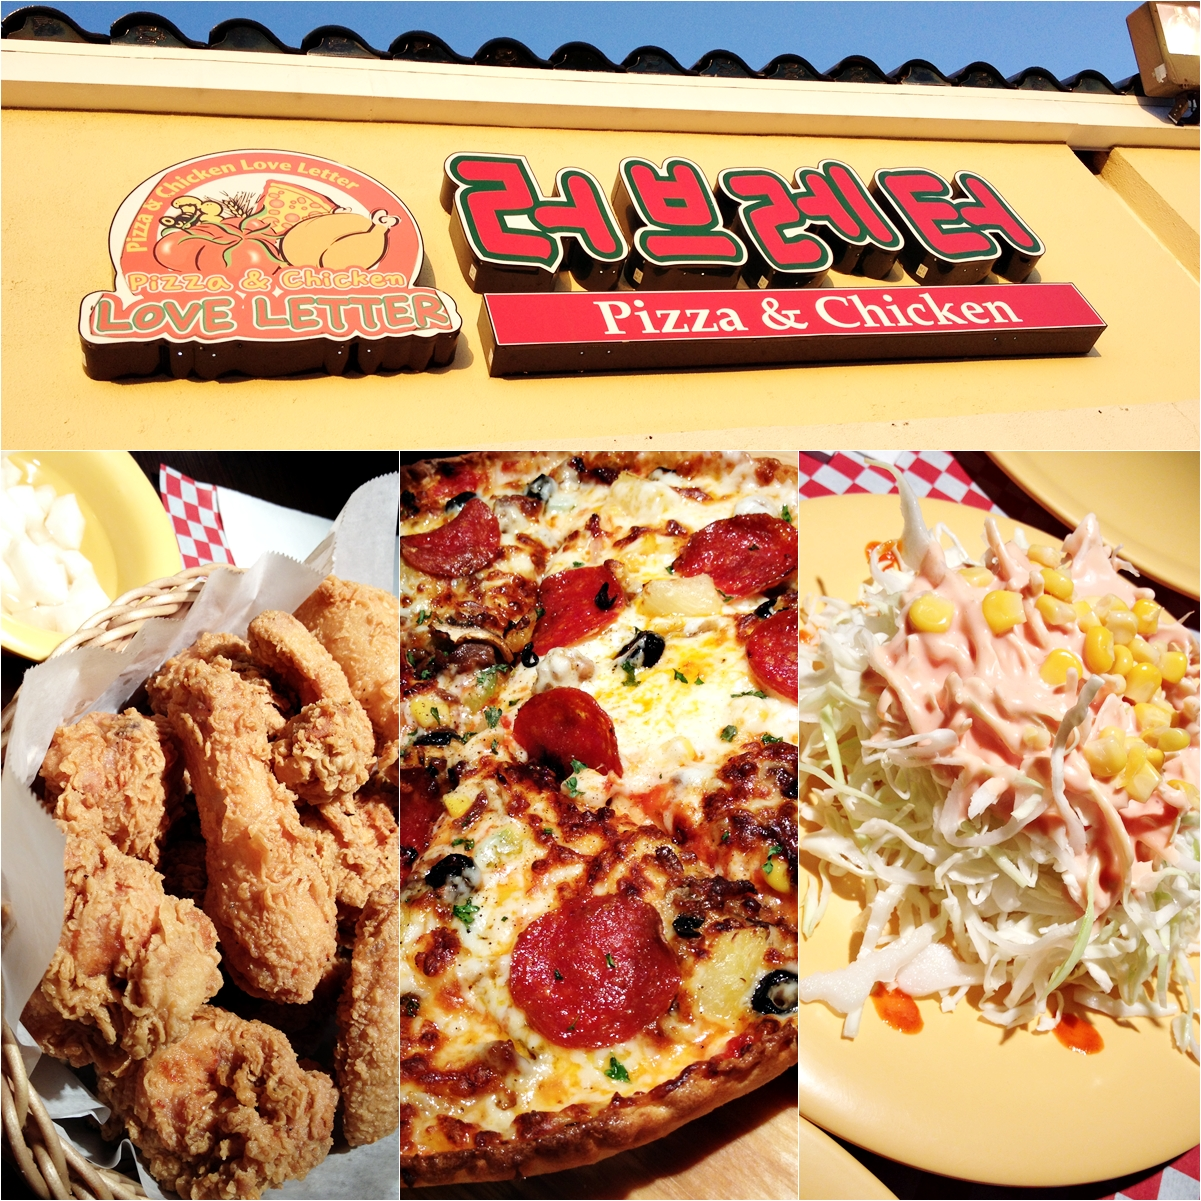 love letter pizza 南加美食 letter pizza amp chicken rowland heights ca 23482 | 1